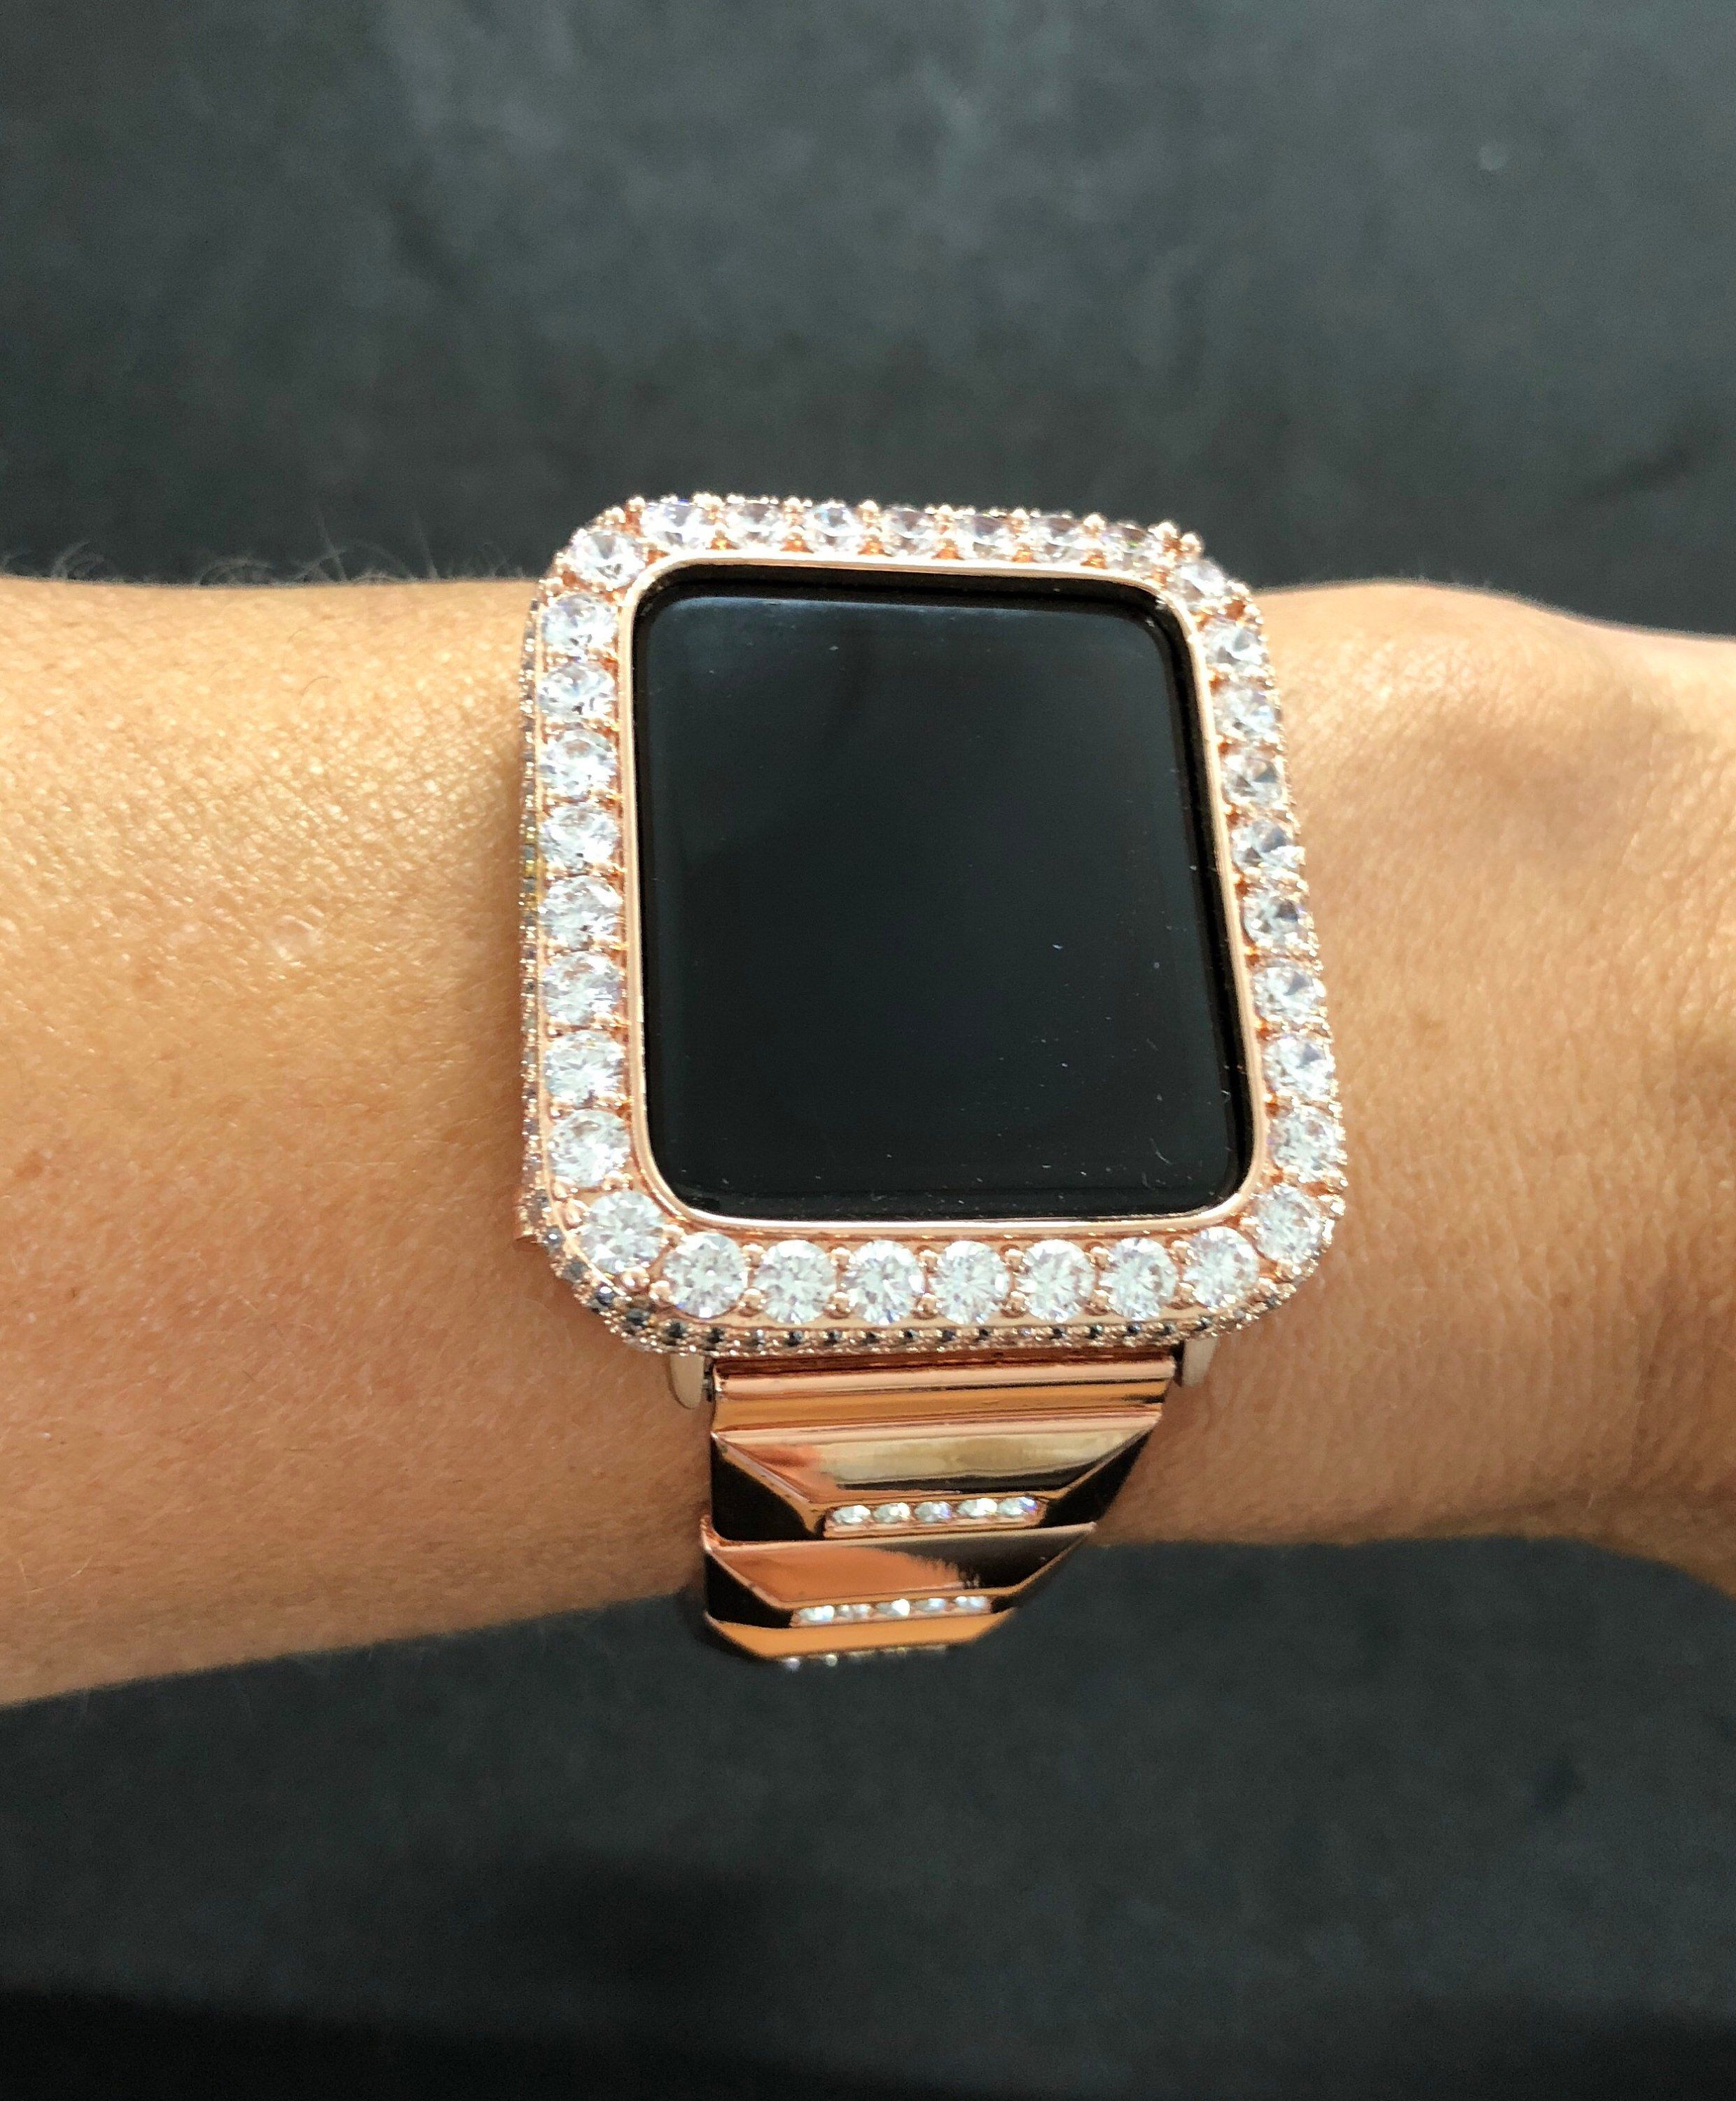 Pin On Apple Watch Bands Case Covers Bezels Crystal Bling